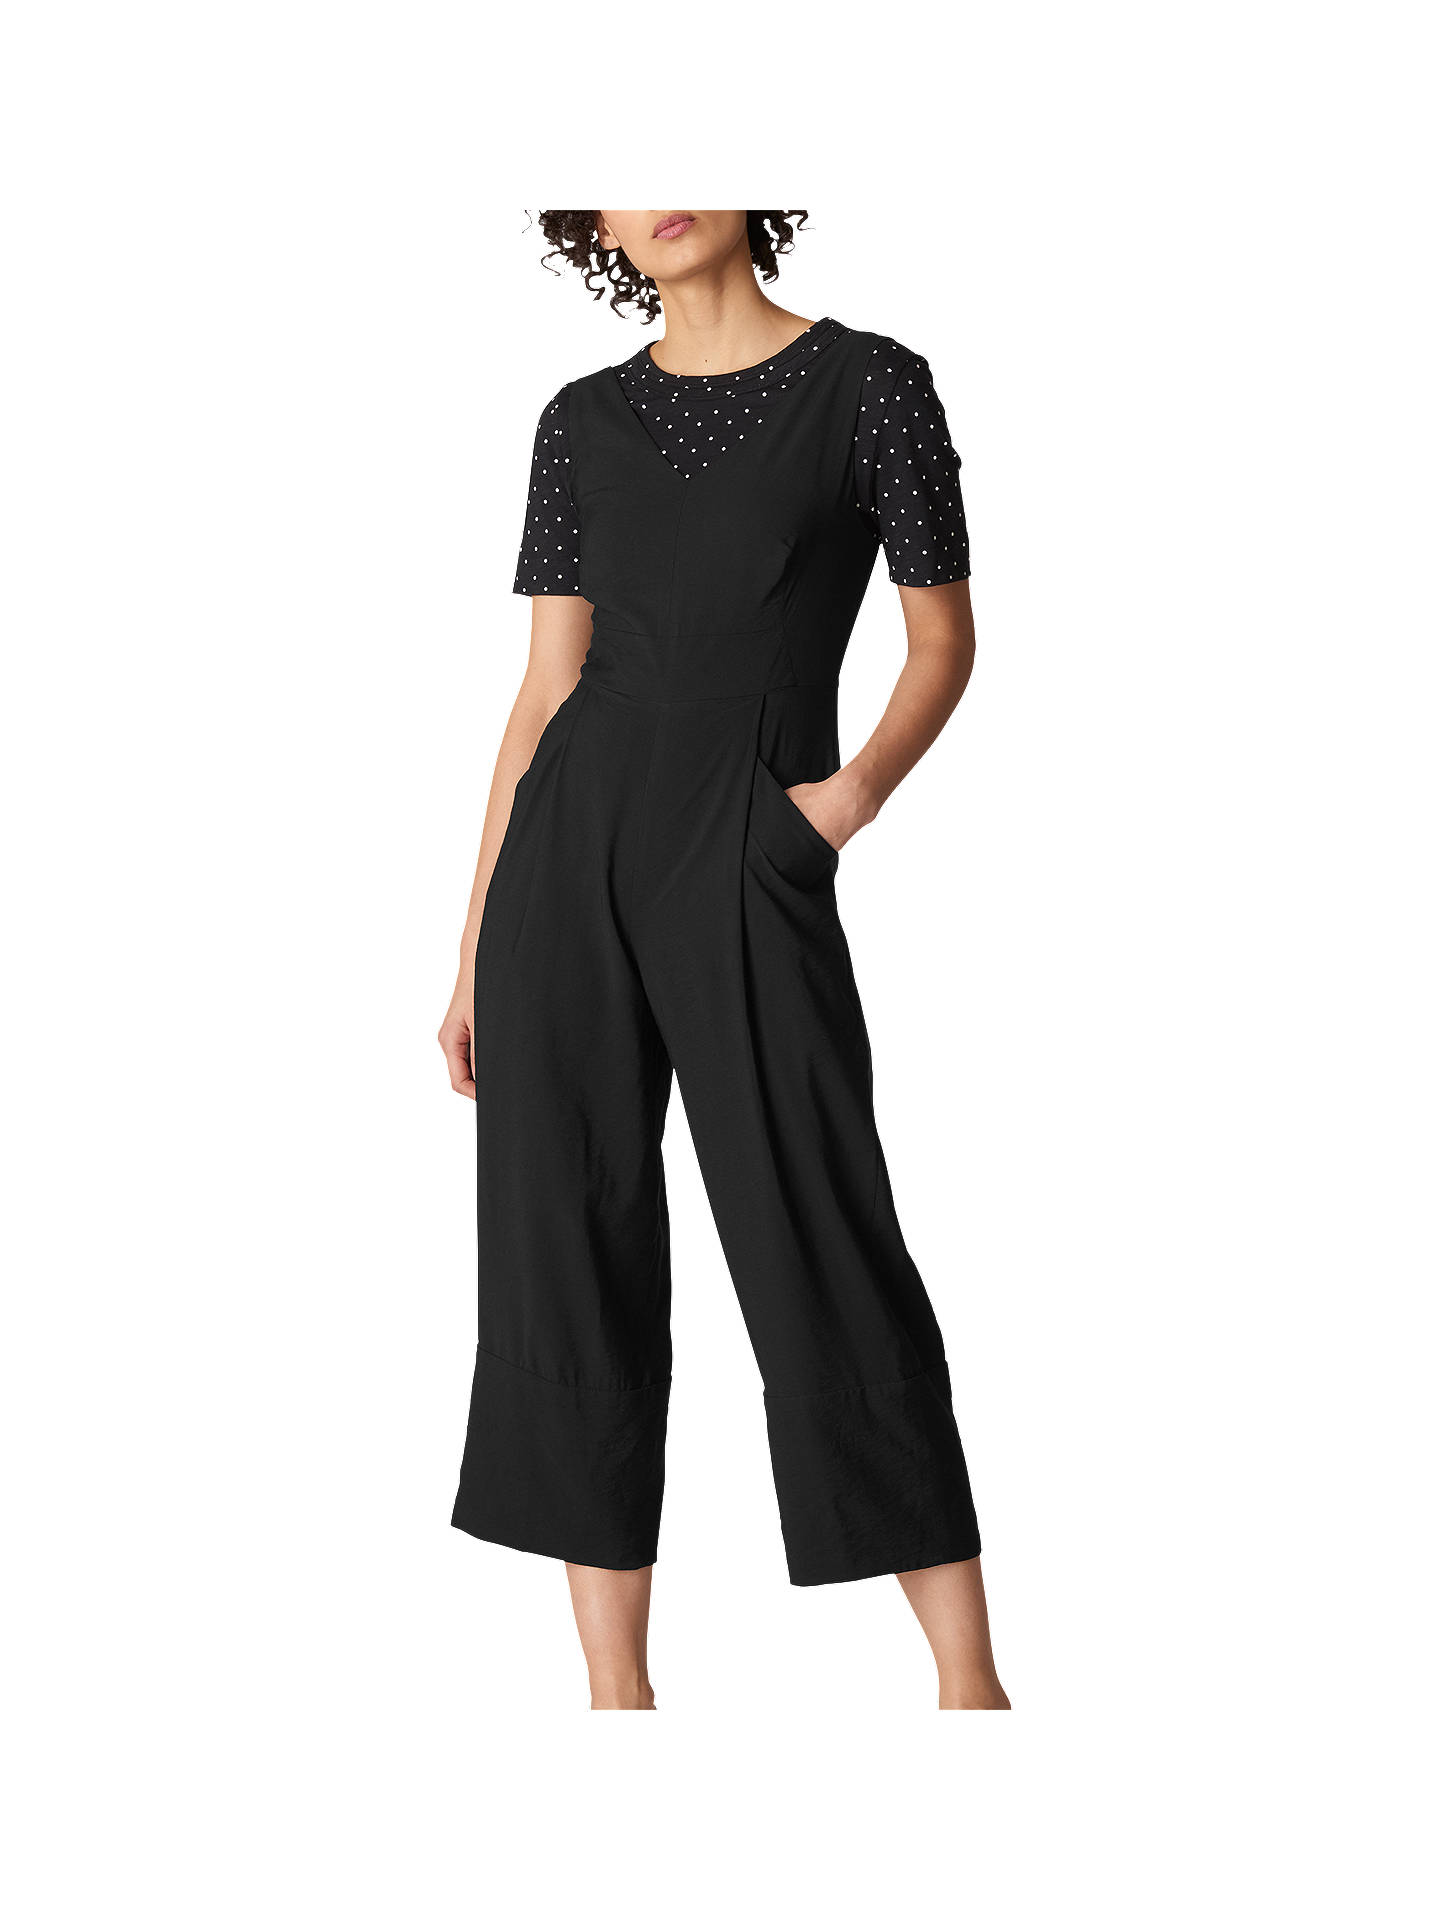 Whistles Casual Jumpsuit, Black at John Lewis & Partners